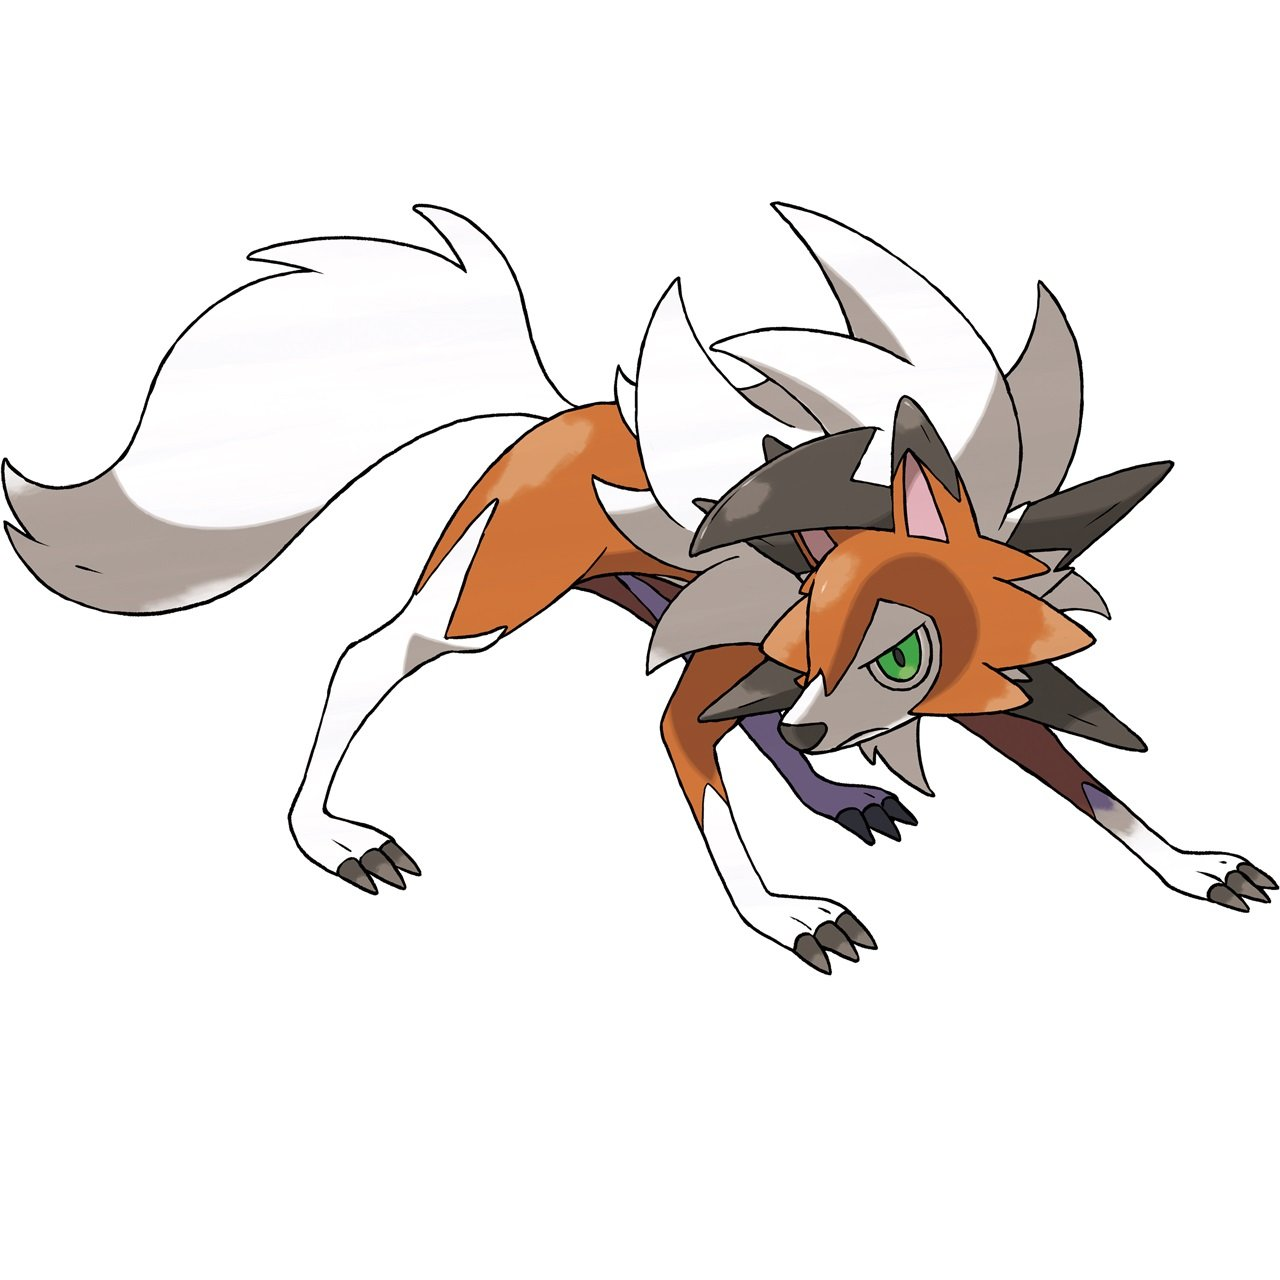 The 10 Pokemon you should be using in Ultra Sun and Ultra